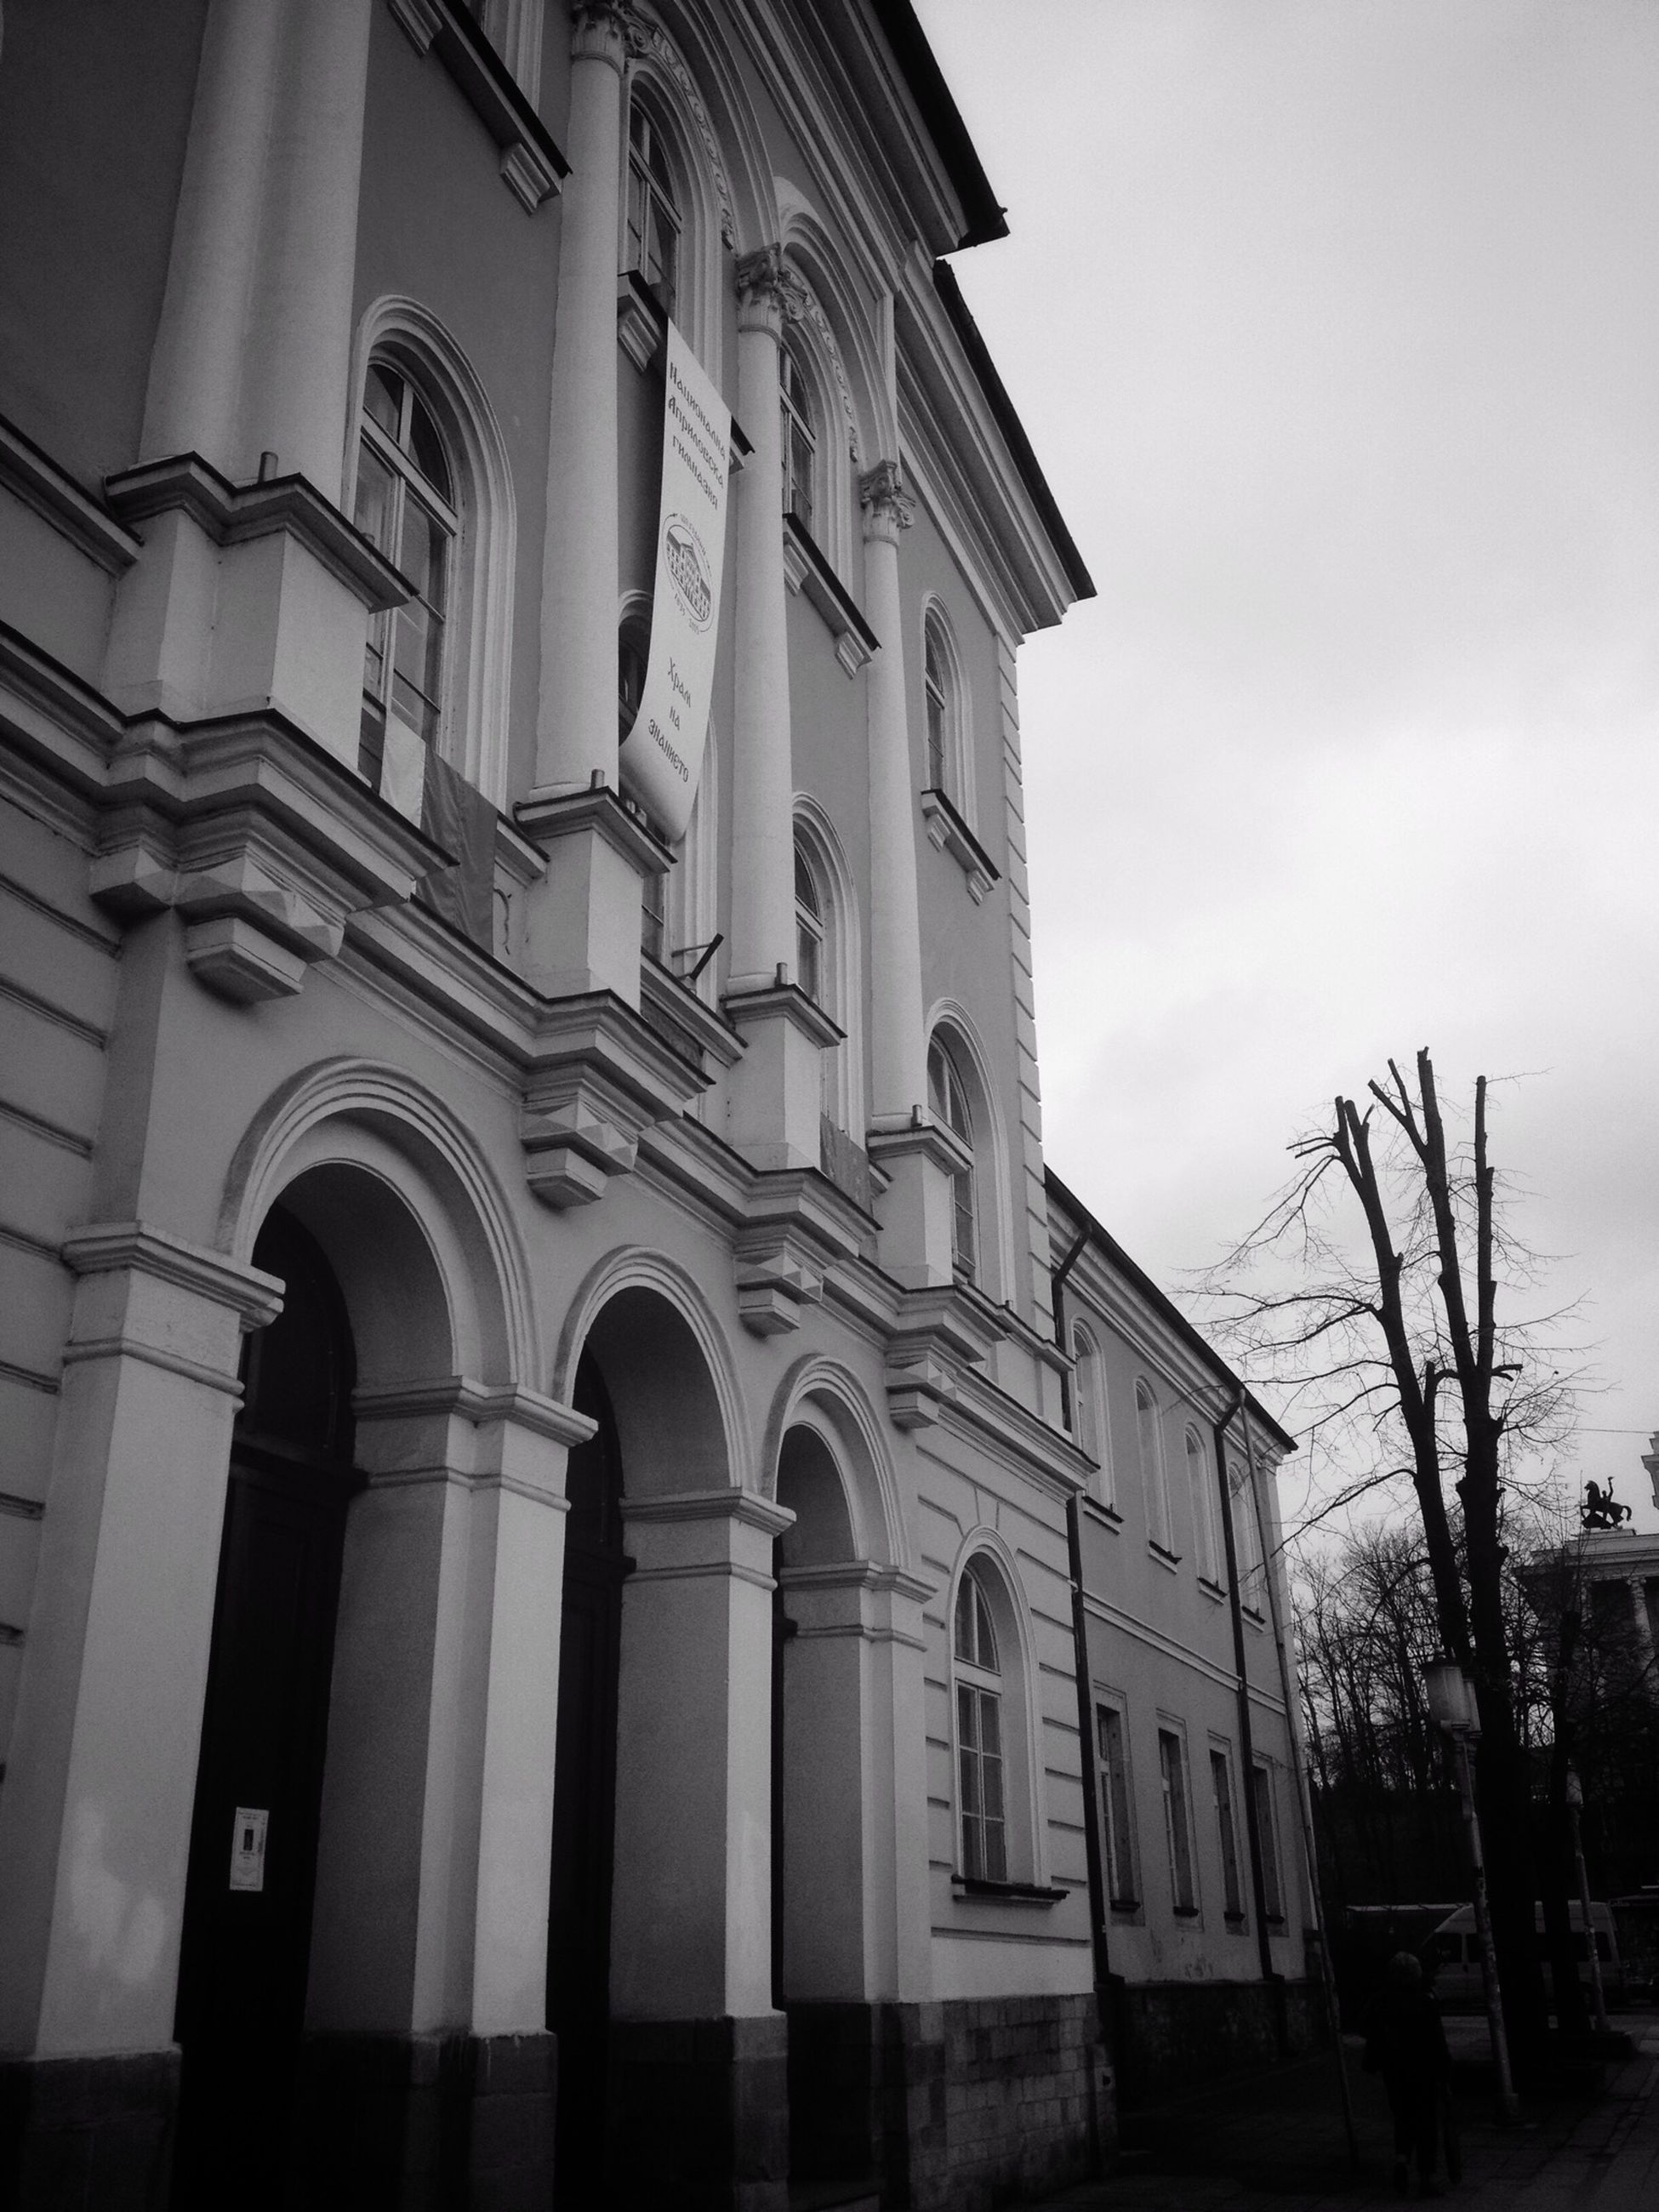 architecture, built structure, building exterior, low angle view, sky, window, arch, building, city, facade, outdoors, day, no people, street light, church, cloud - sky, history, cloud, religion, street